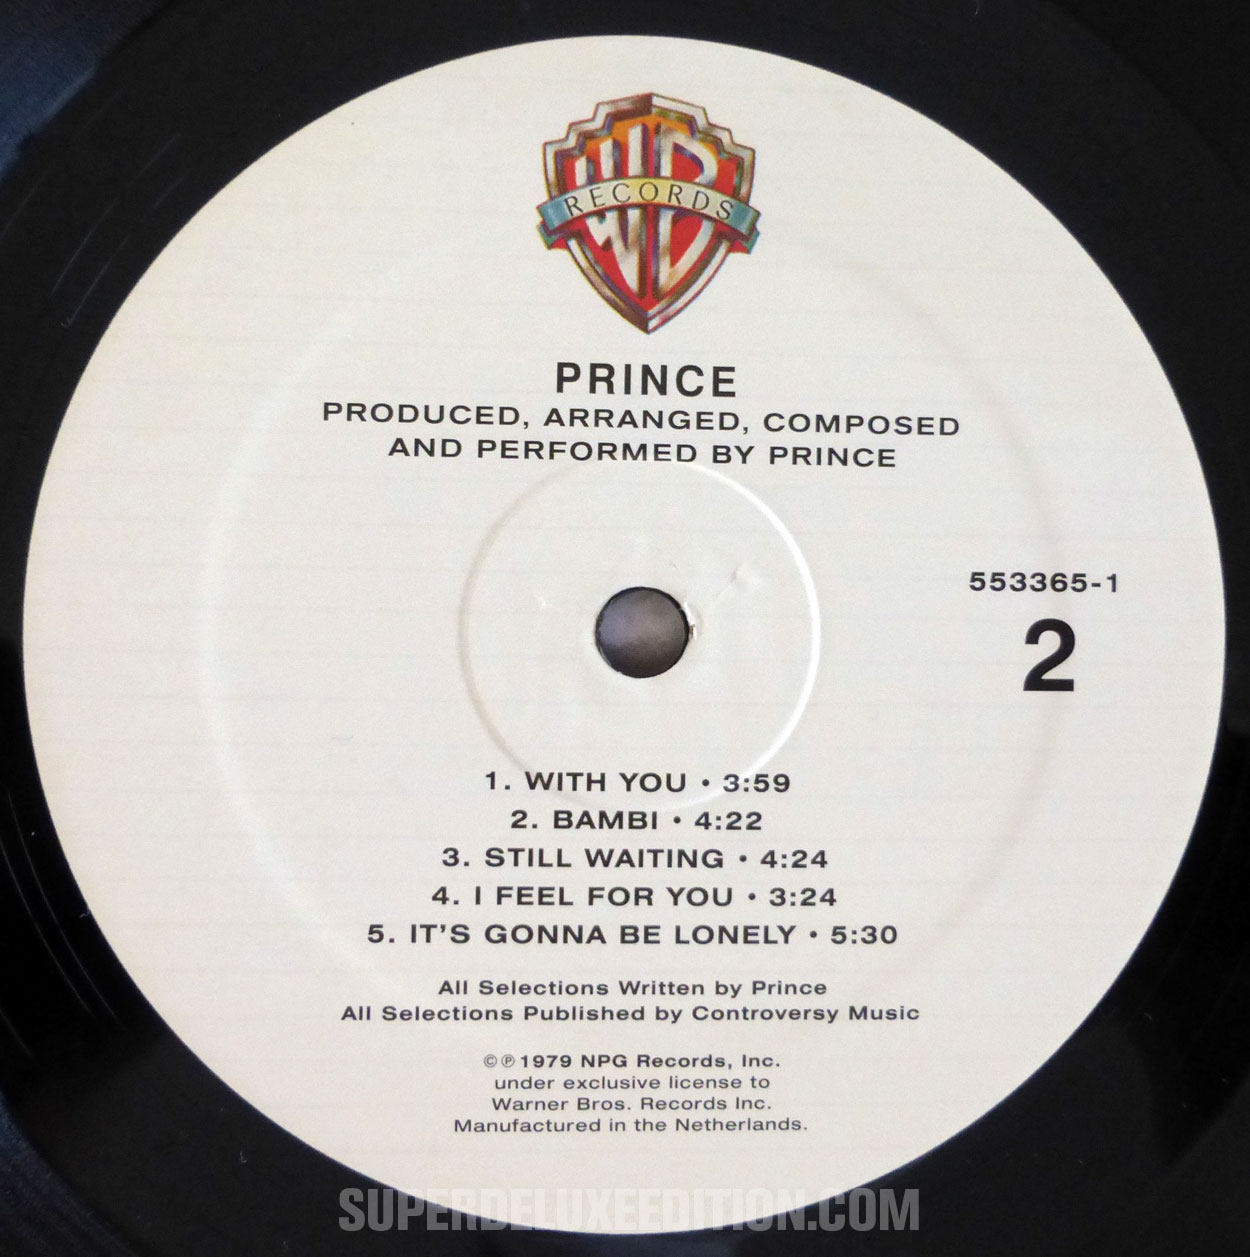 FIRST PICTURES: Prince vinyl LP reissue